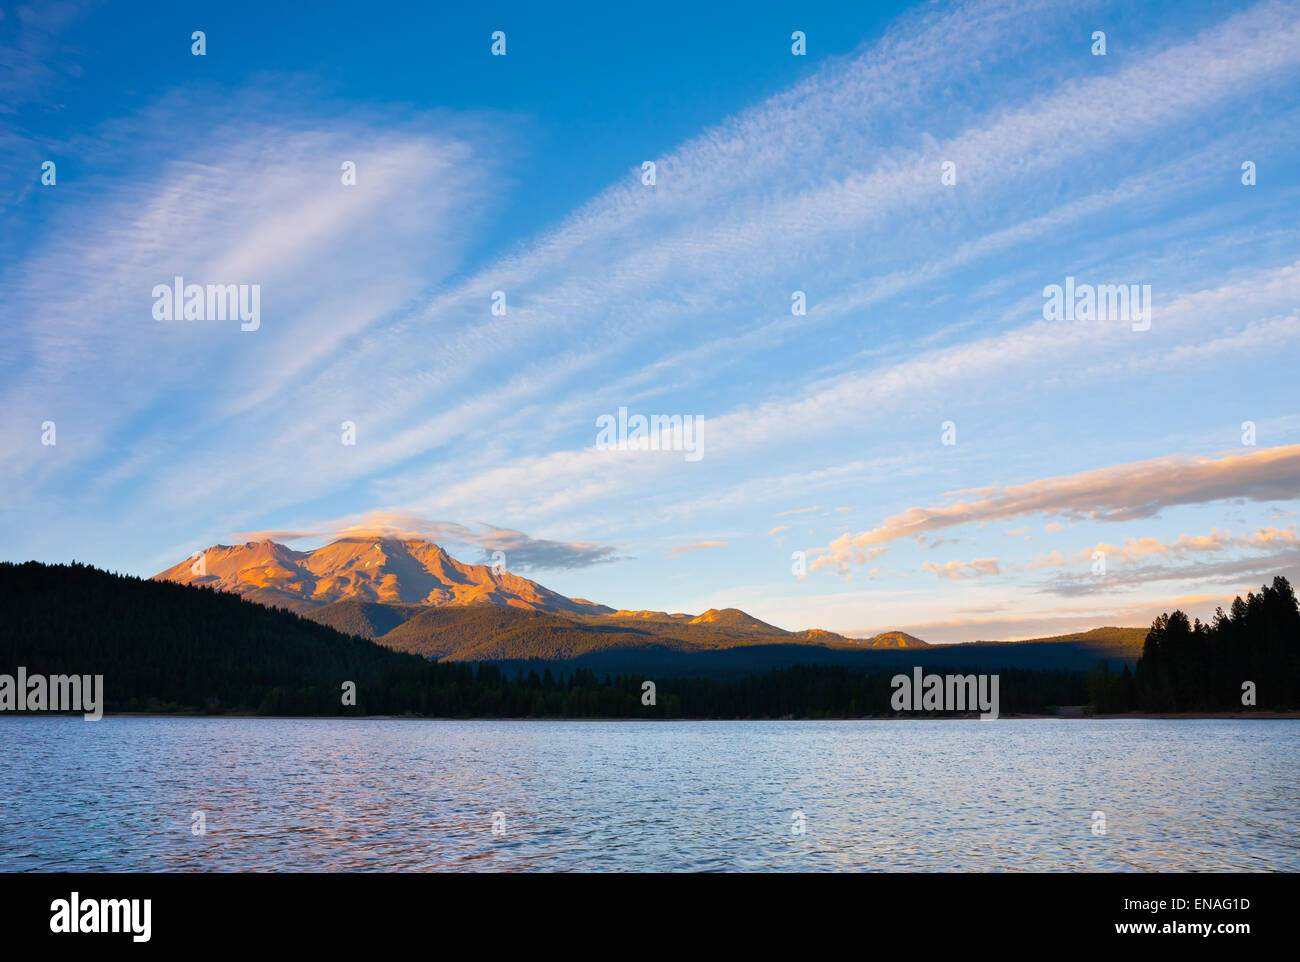 Mount Shasta at sunset - Stock Image